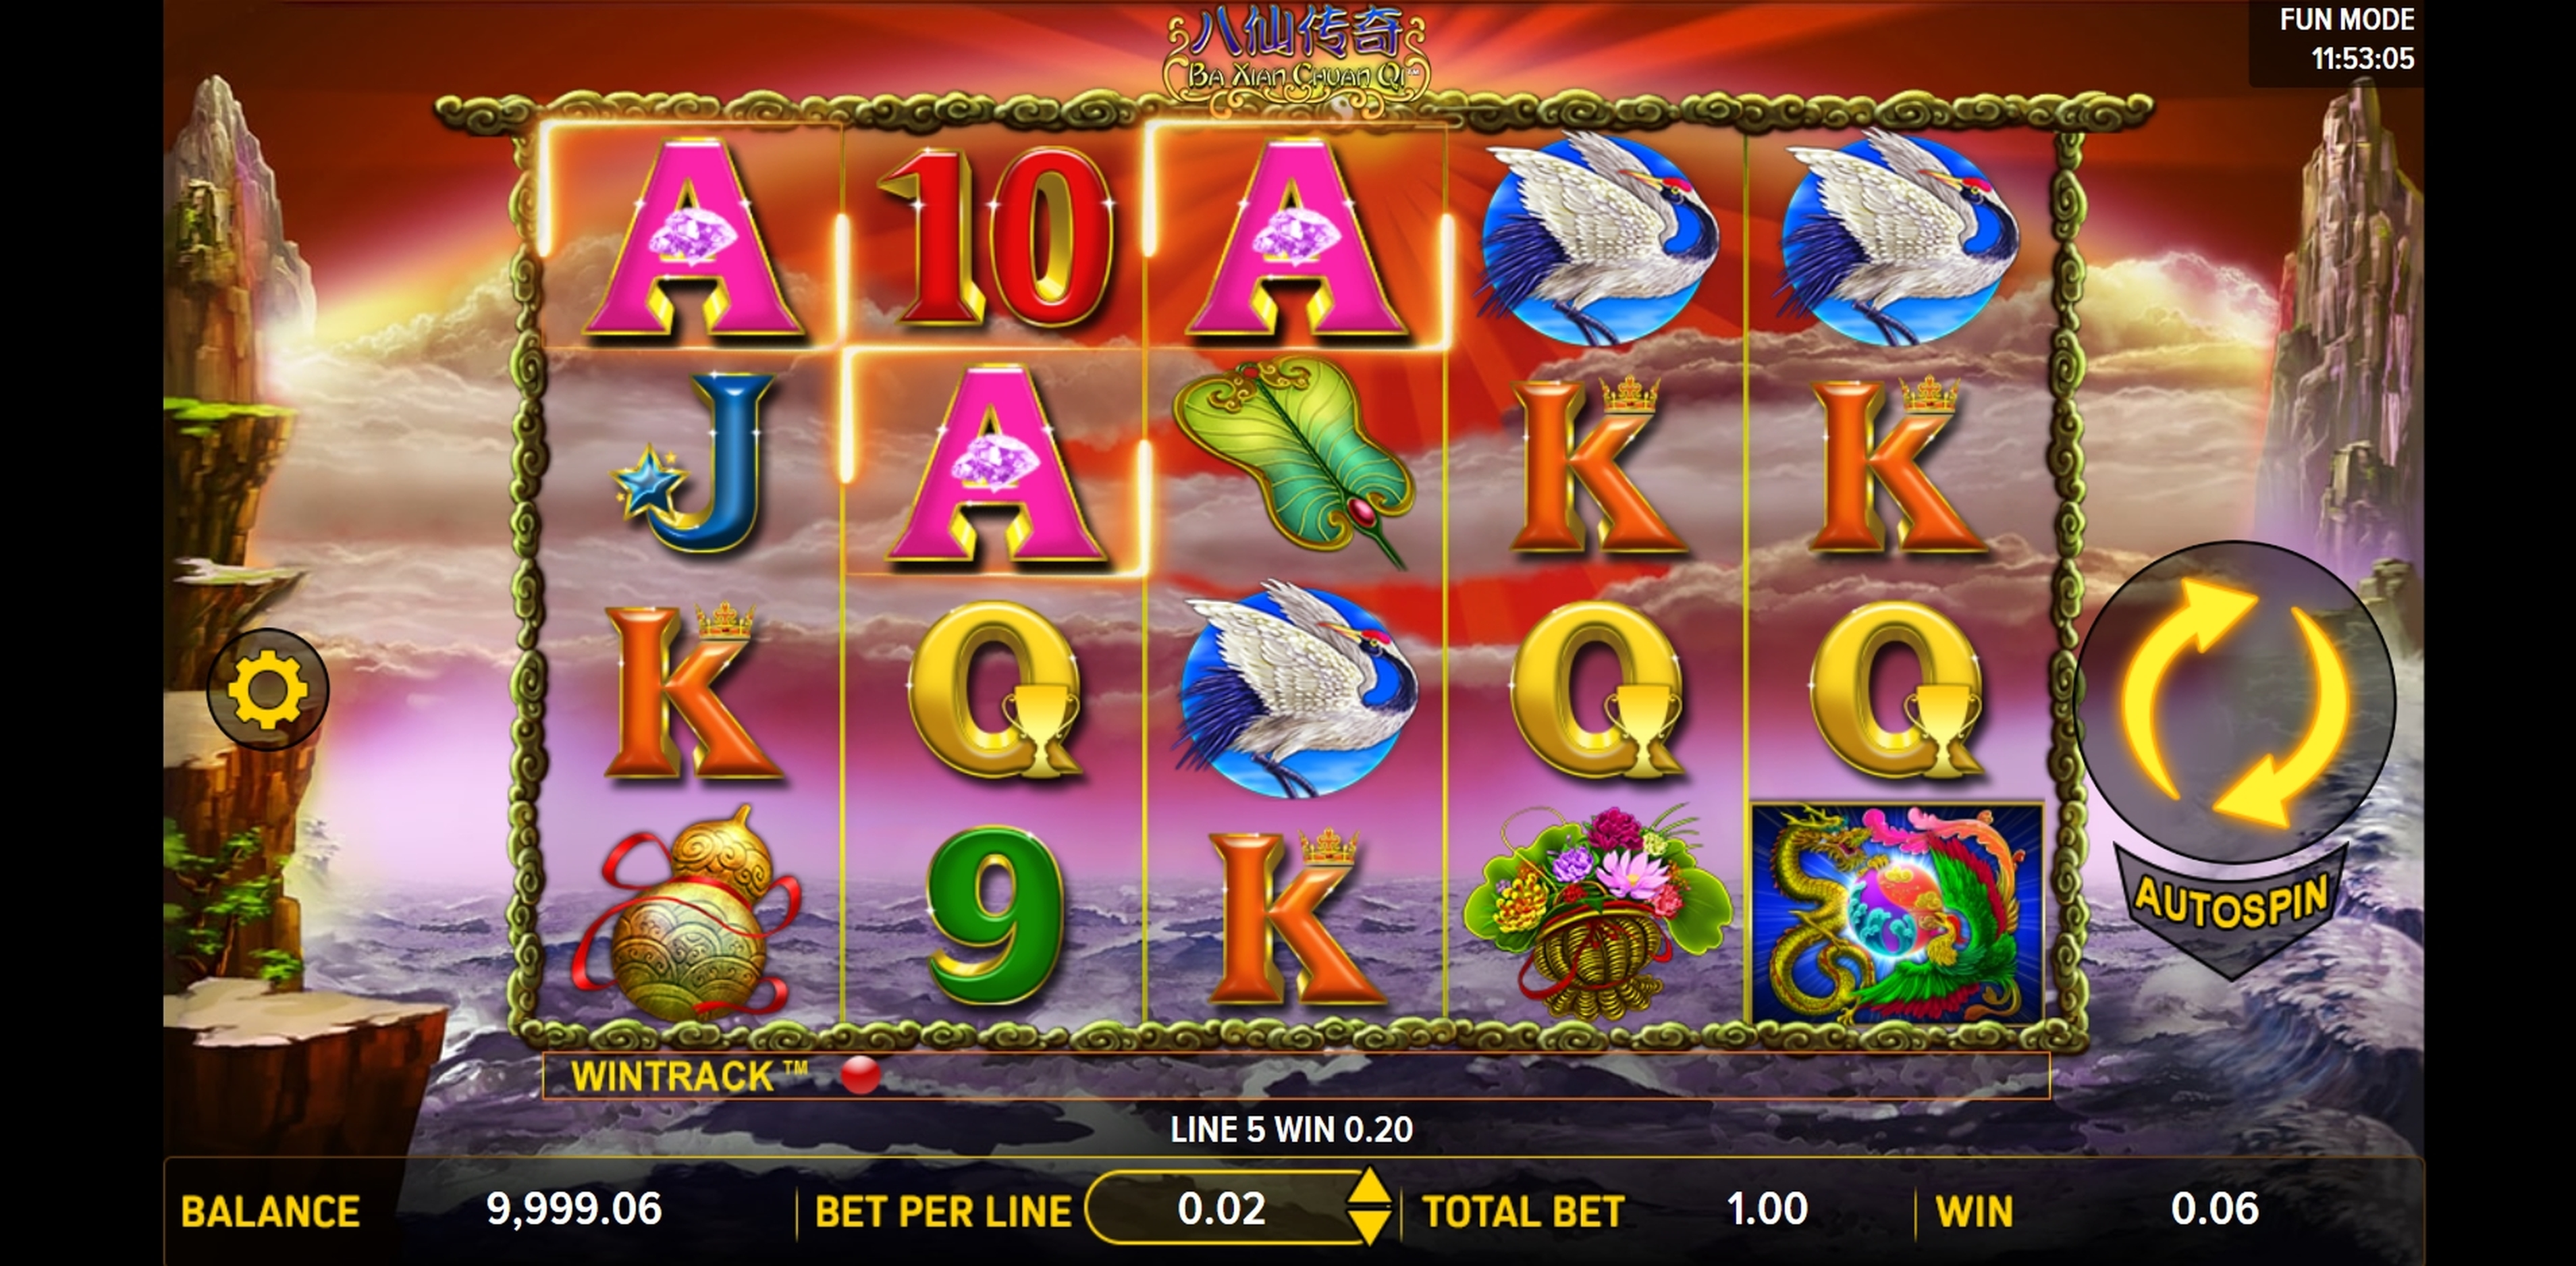 Win Money in Ba Xian Chuan Qi Free Slot Game by Aspect Gaming